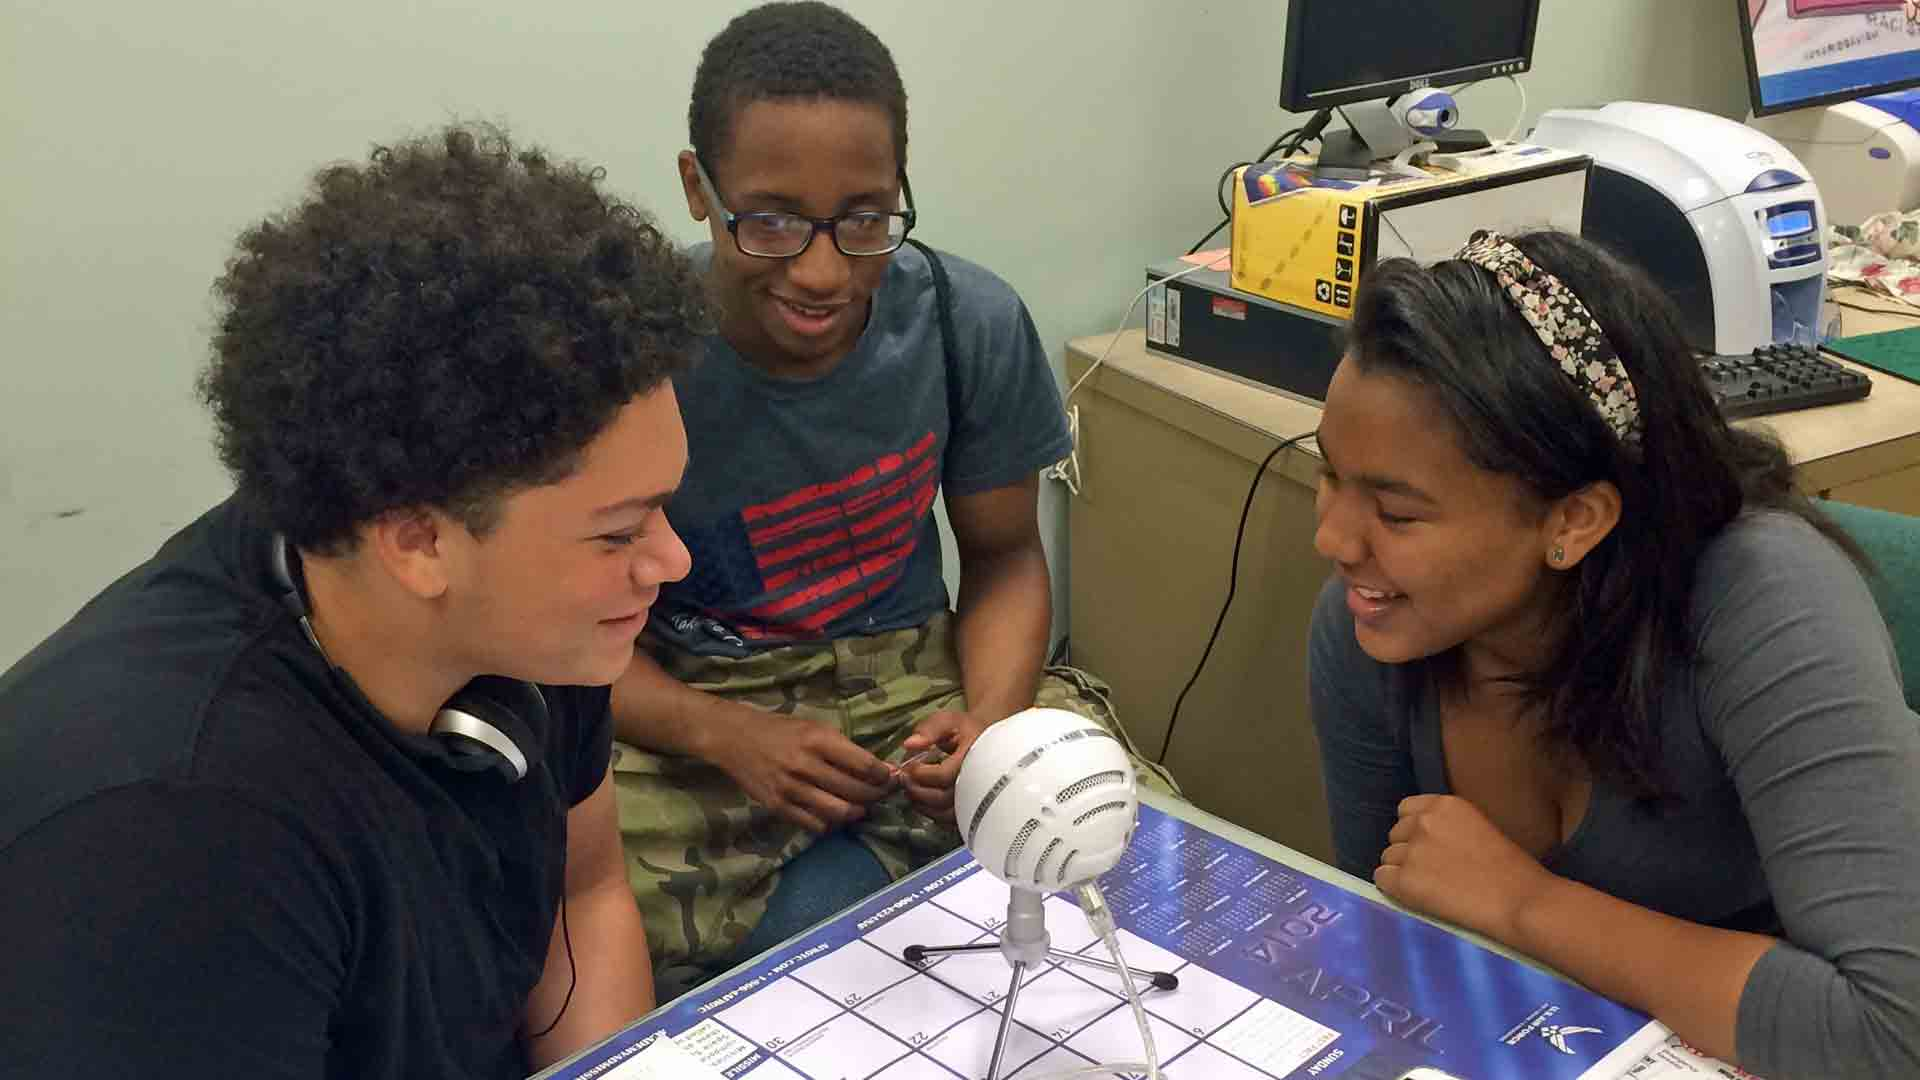 Inspired By Serial, Teens Create Podcasts As A Final Exam